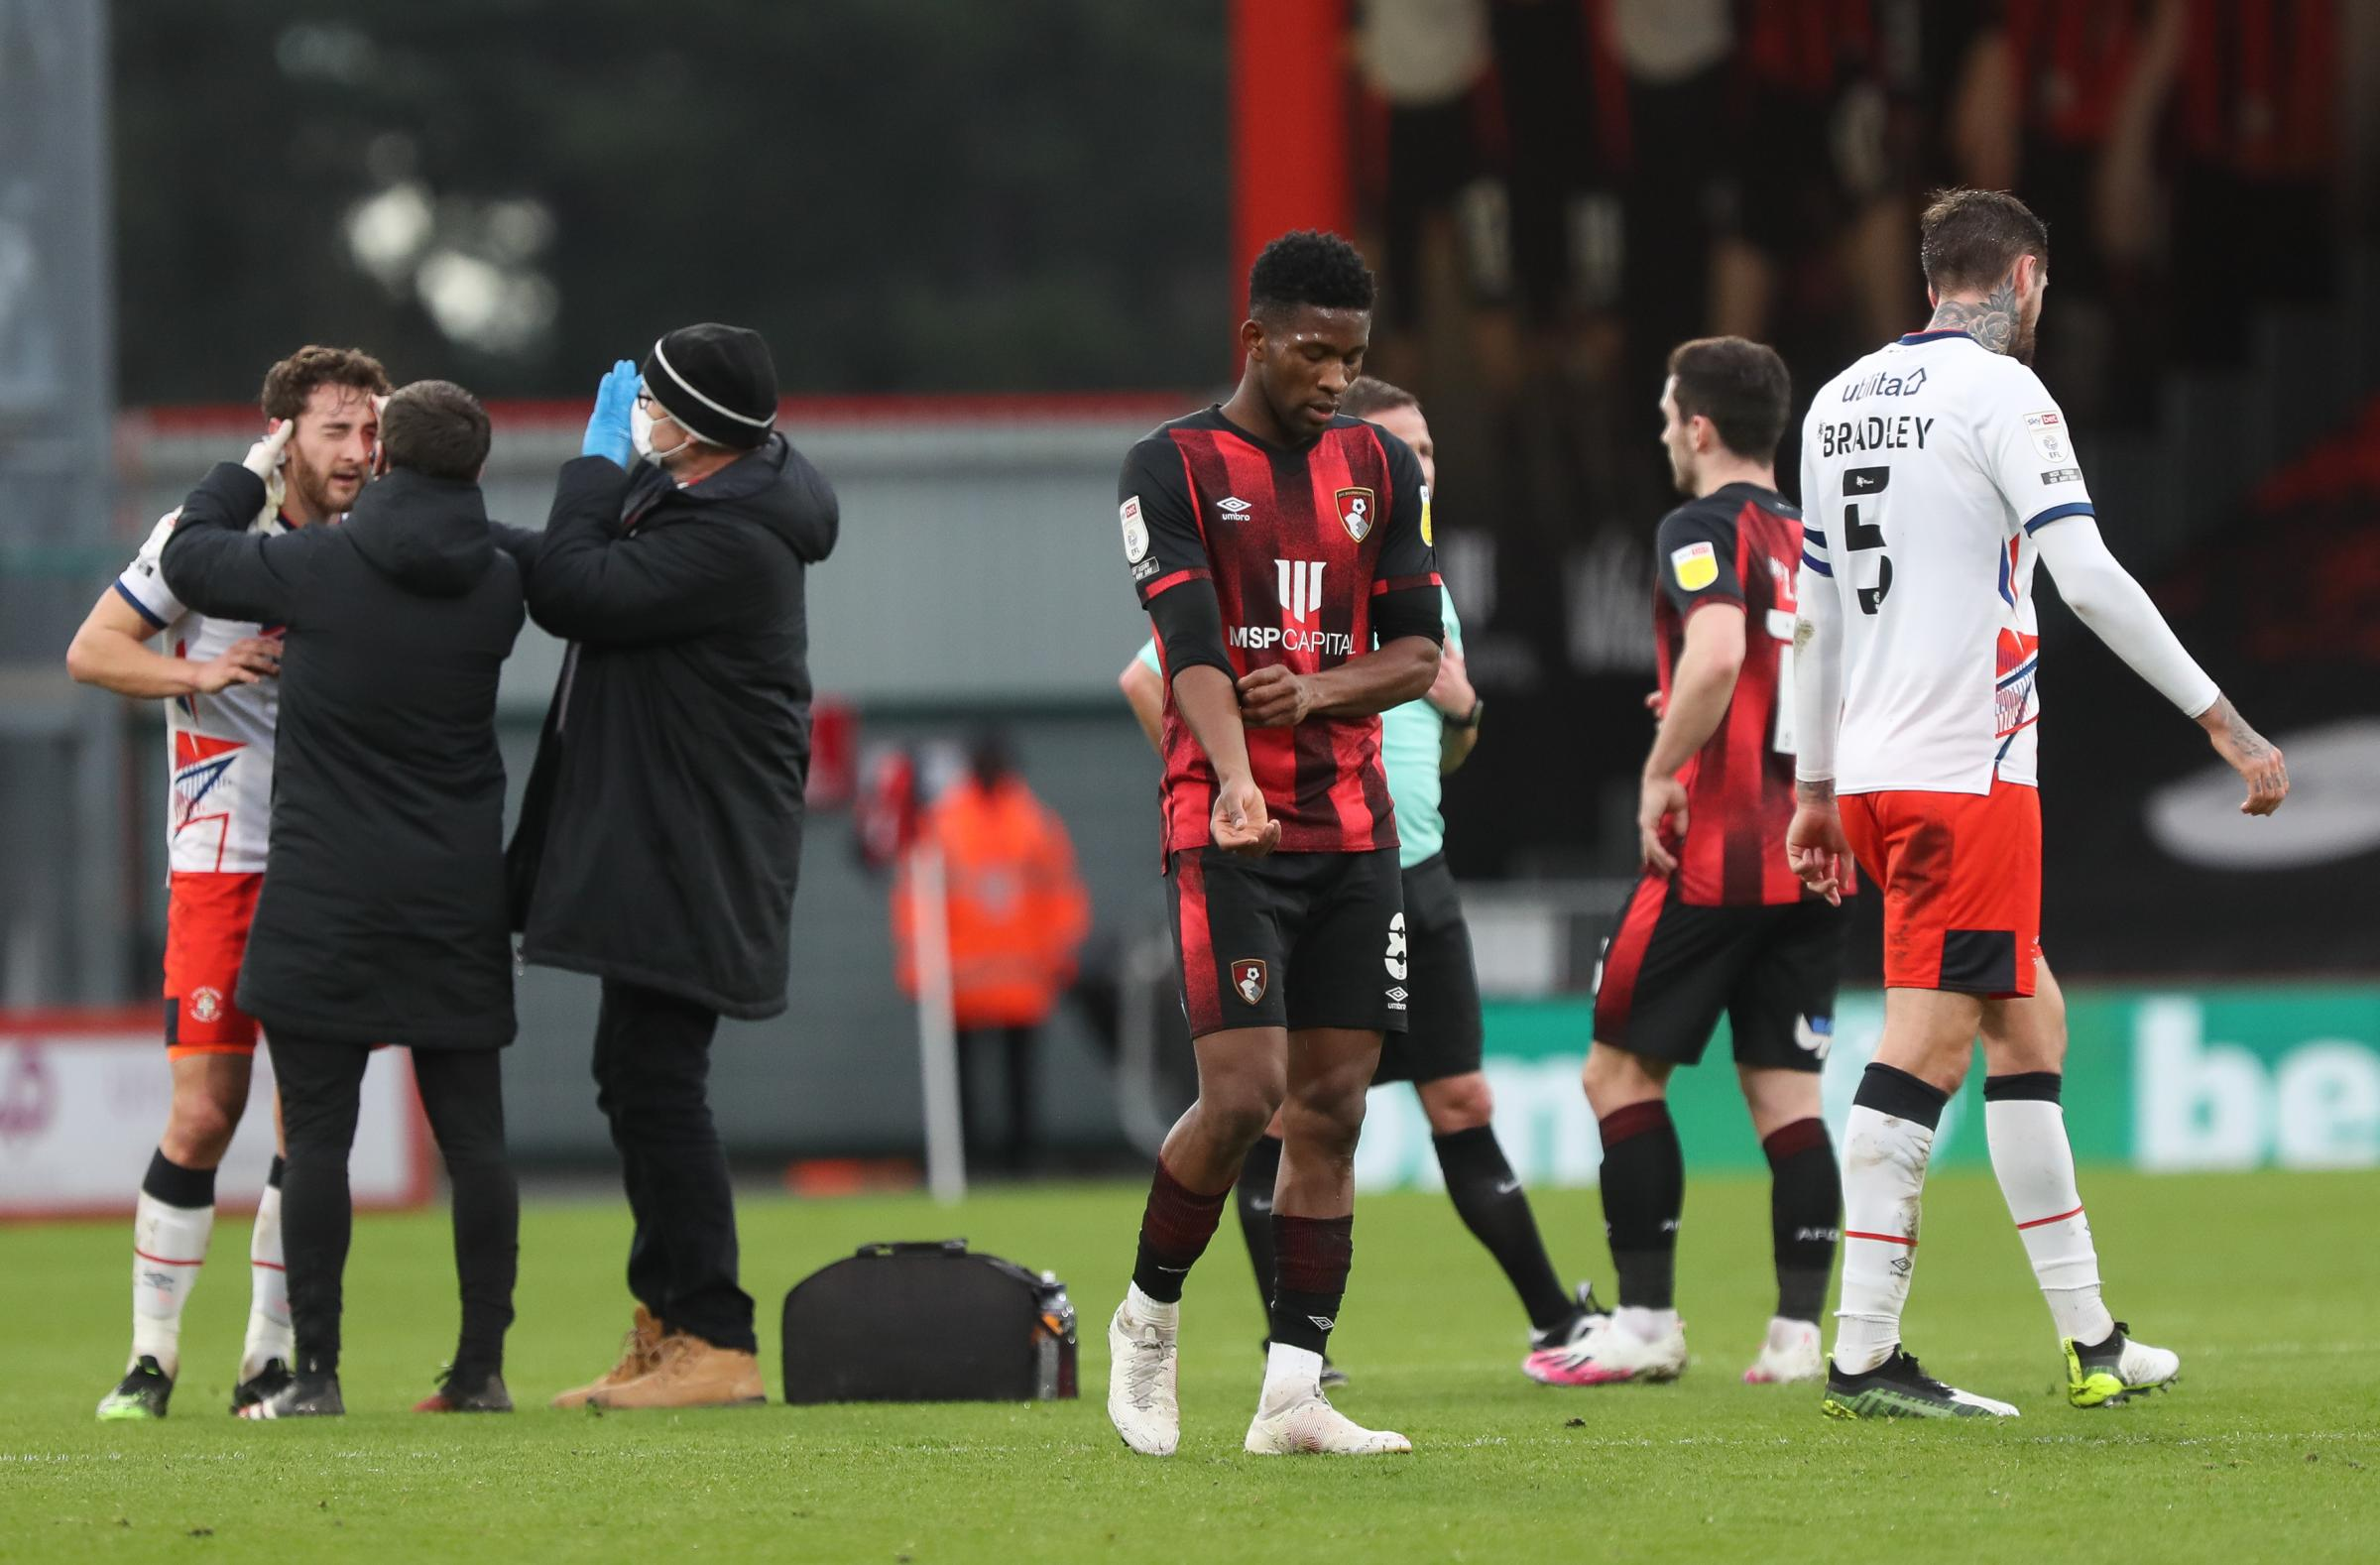 AFC Bournemouth lodge appeal against Jefferson Lerma red card